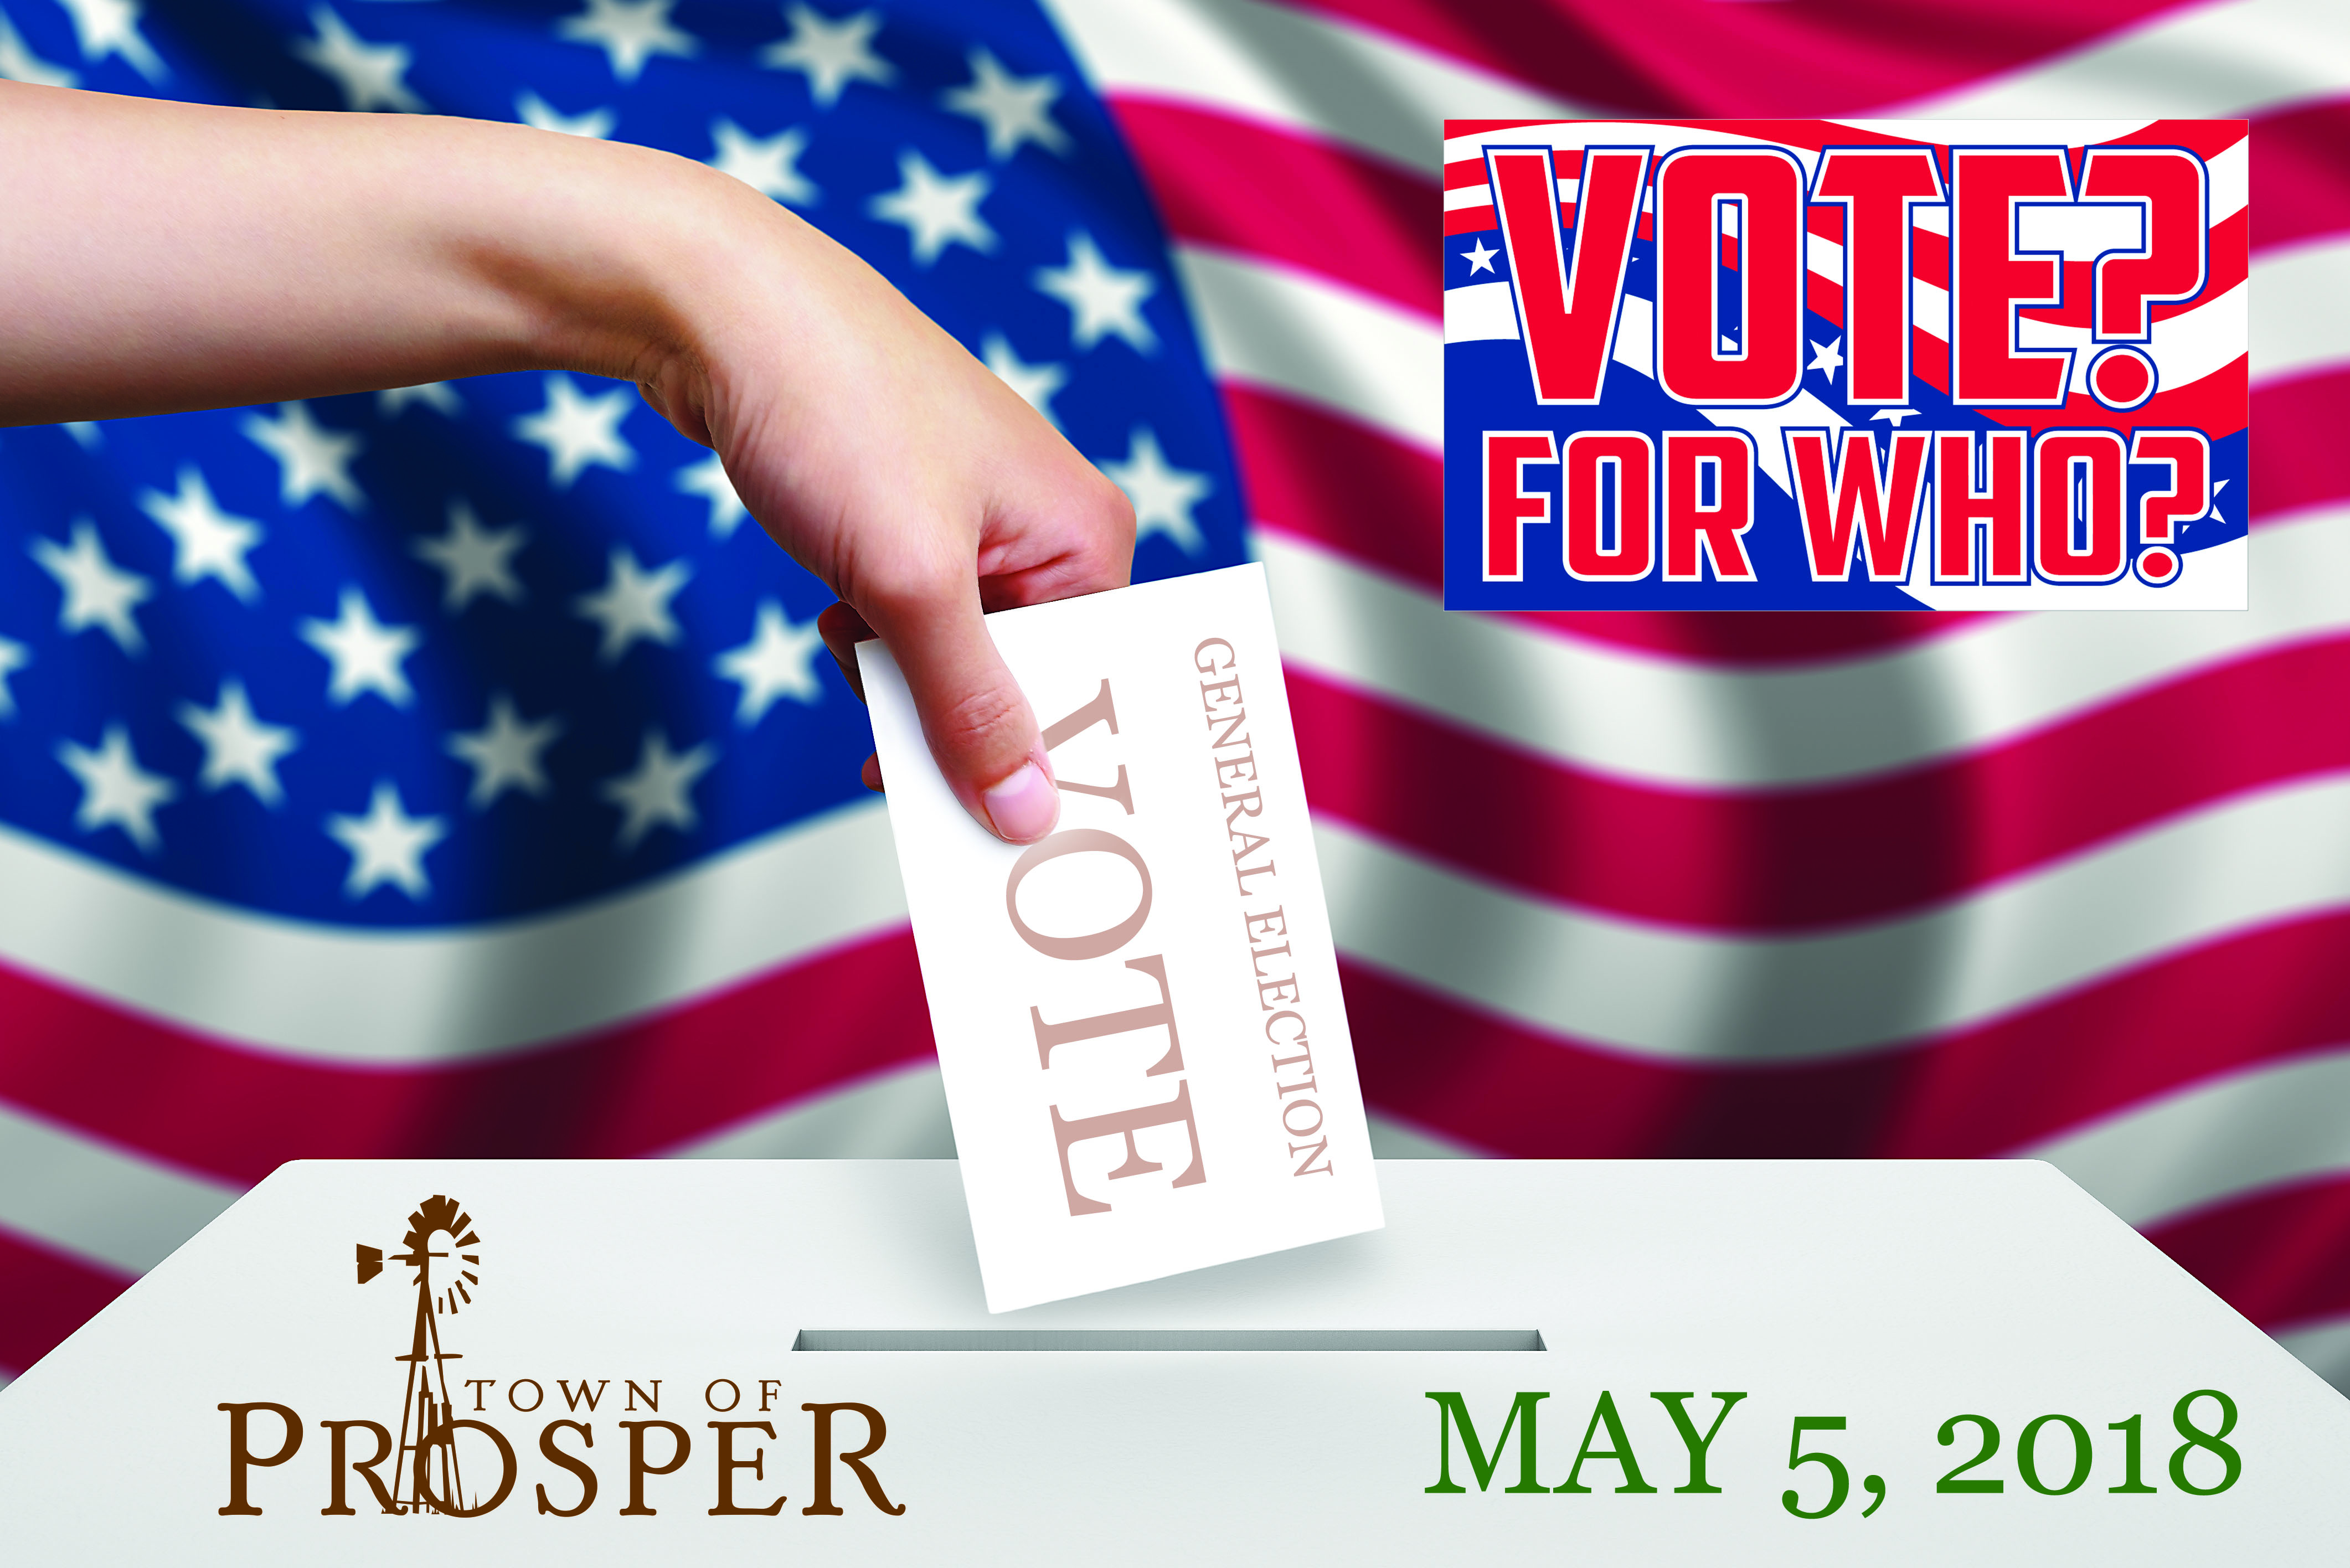 Town of Prosper General Election to be held on May 5